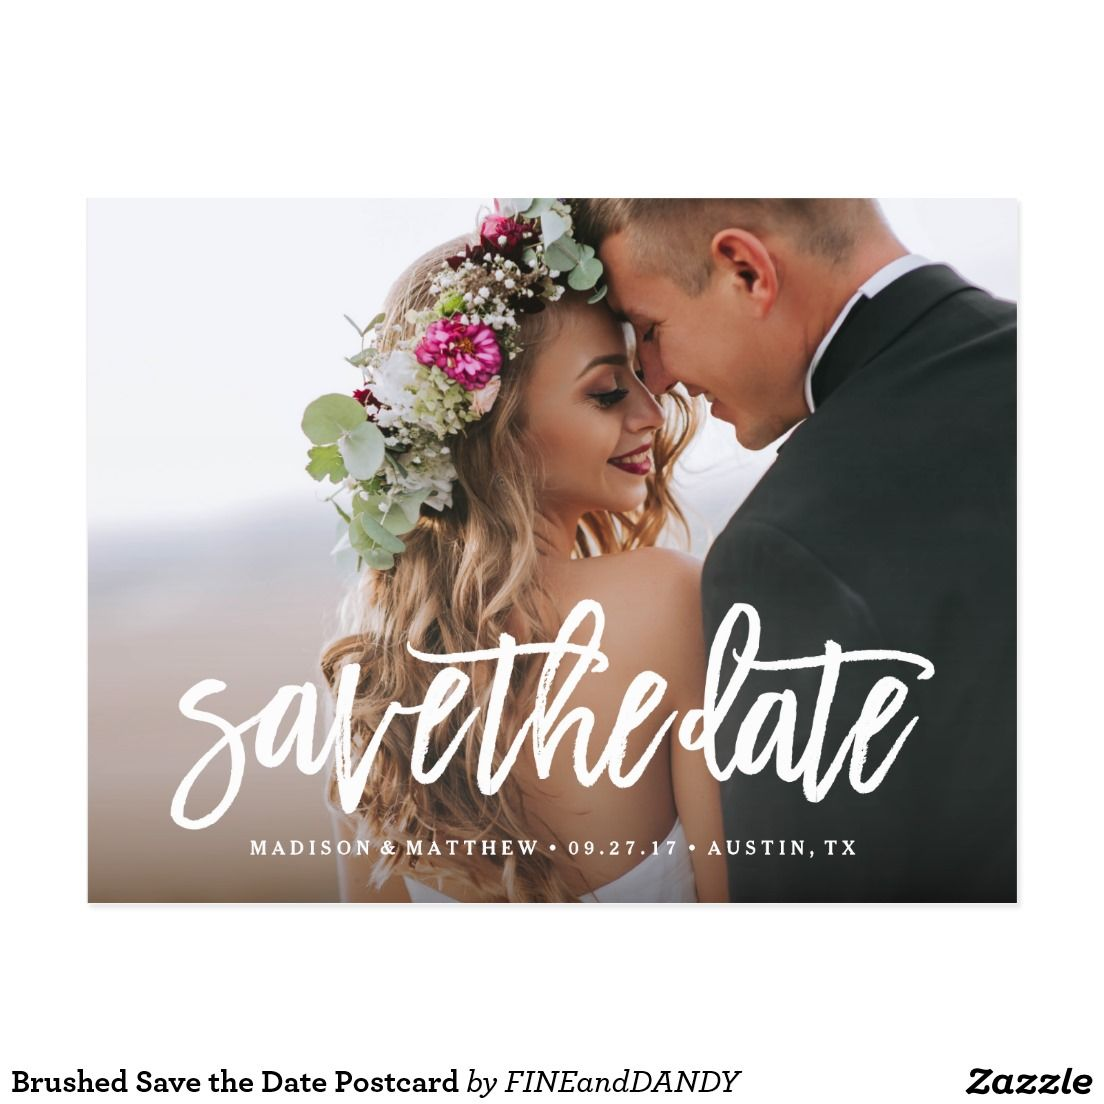 Custom save the date romantic picture photo wedding announcement custom save the date romantic picture photo wedding announcement invite invitation postcard savethedate wedding monicamarmolfo Image collections